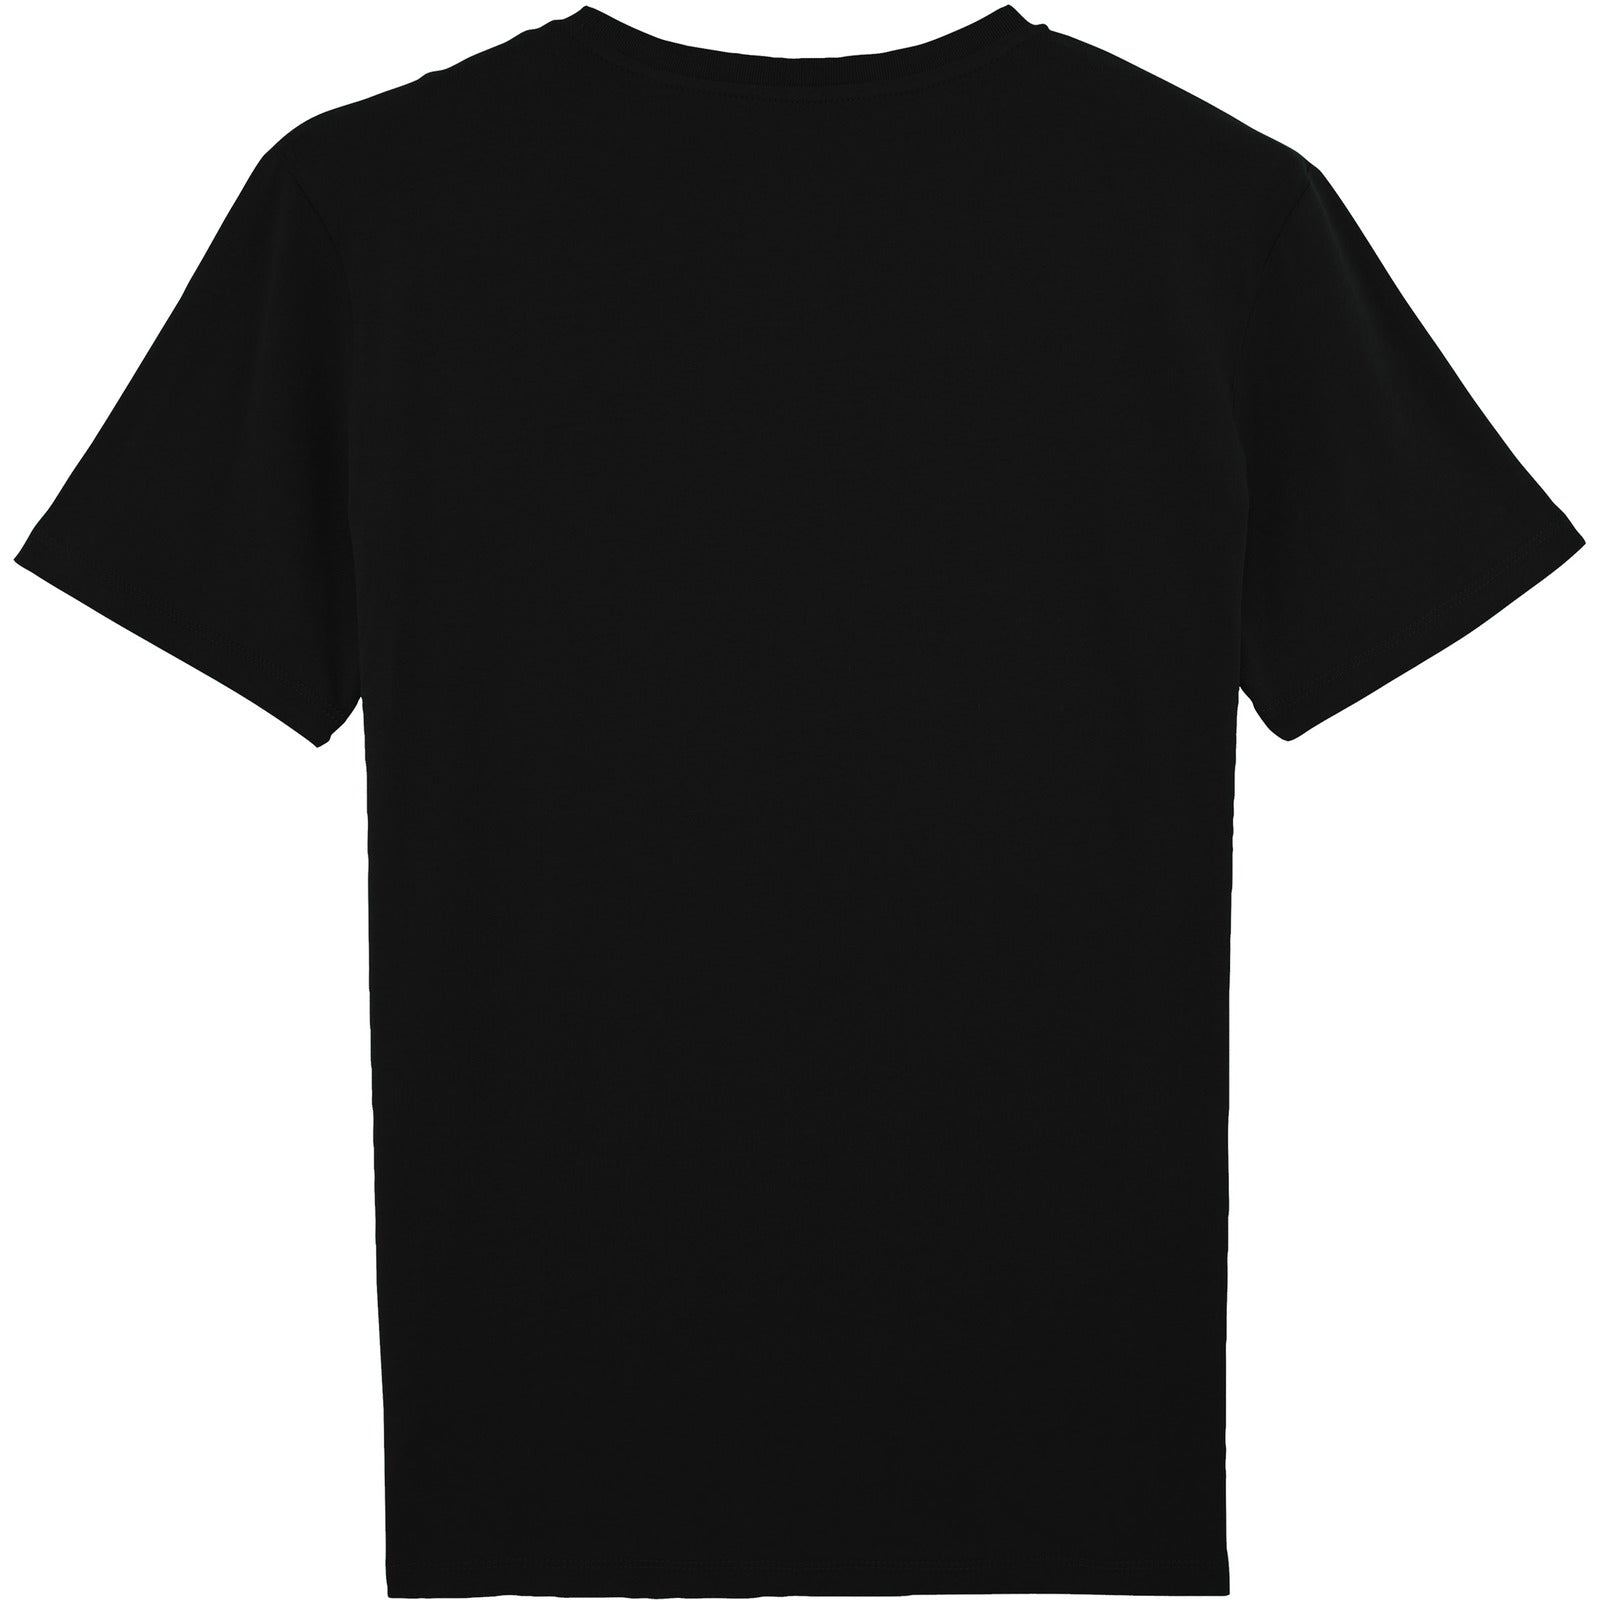 T-SHIRT REGULAR FIT [SCHWARZ]